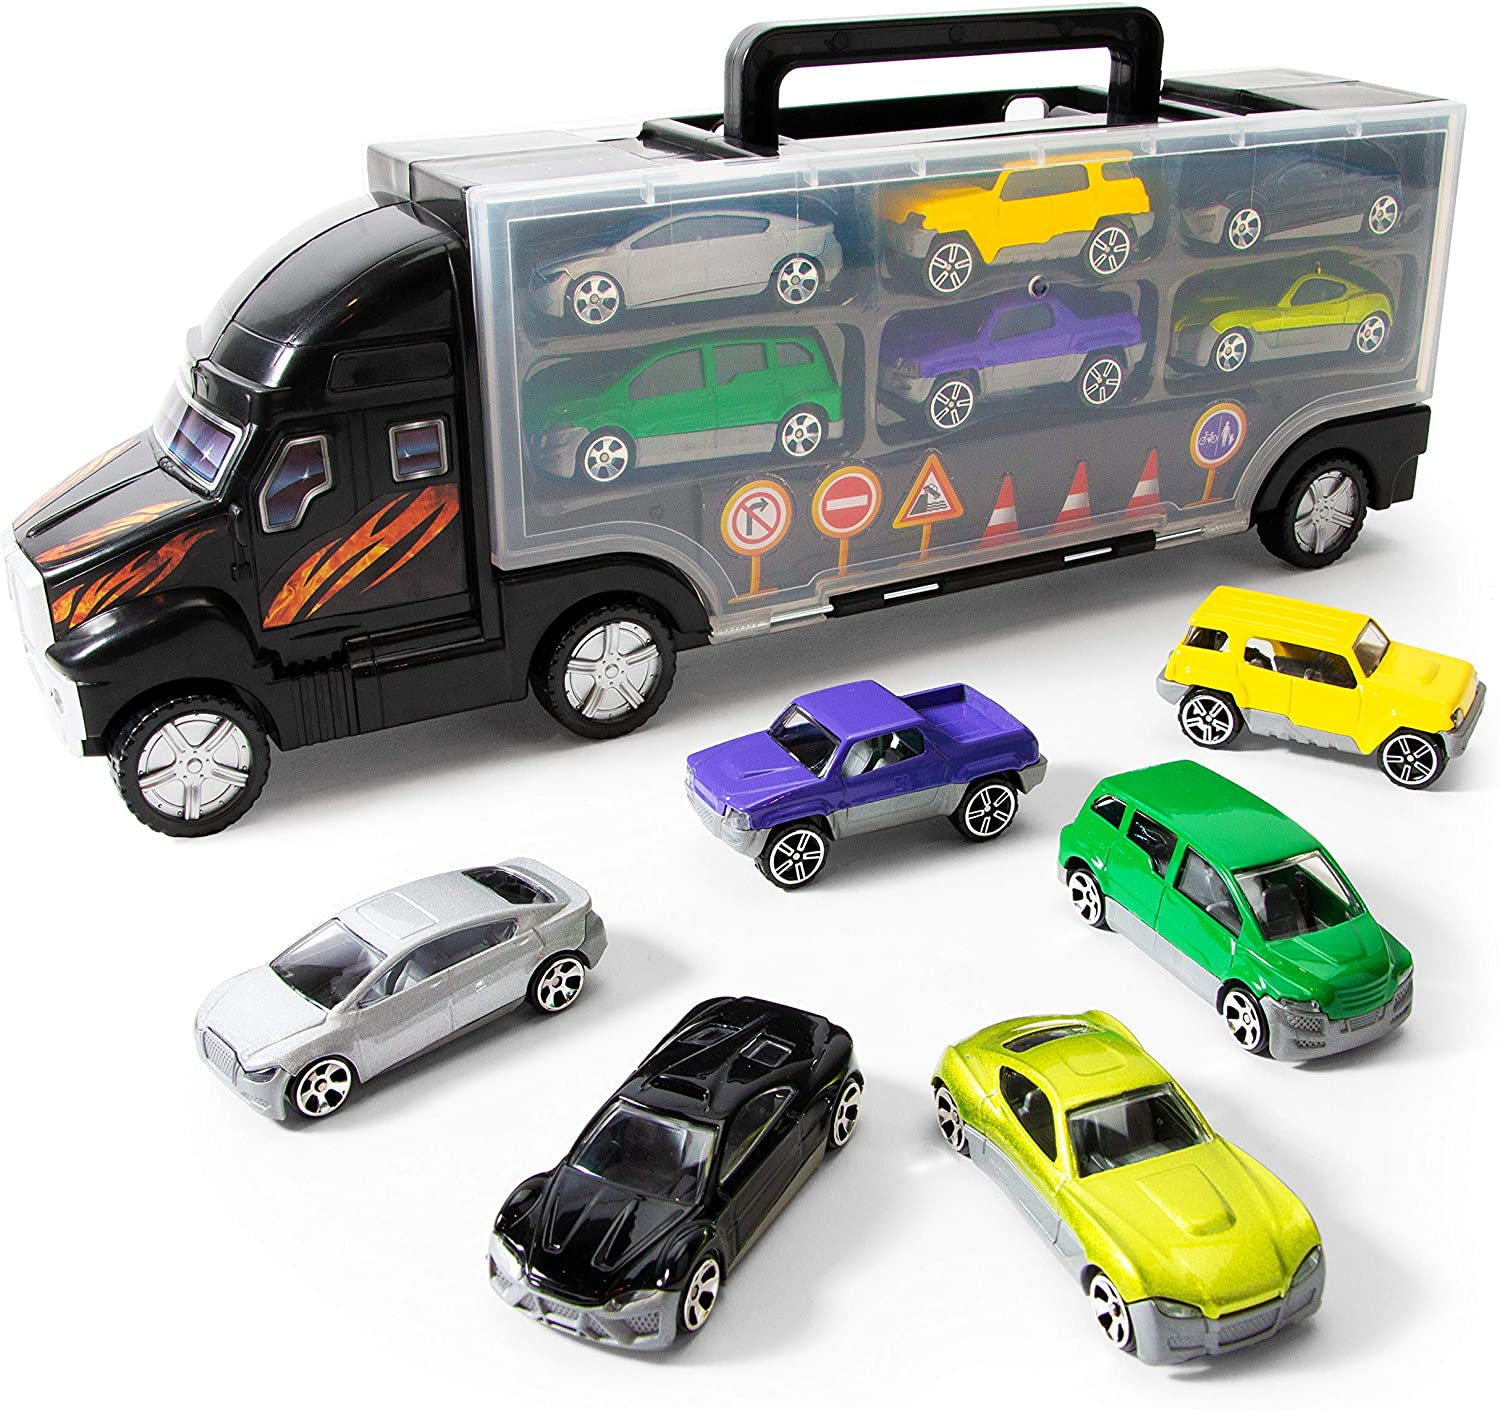 Boley Die Cast Car Truck Carrier - 14 Piece Toy Trucks, Cars, and Traffic Signs Playset for Kids and Toddler Boys and Girls Ages 3 and Up